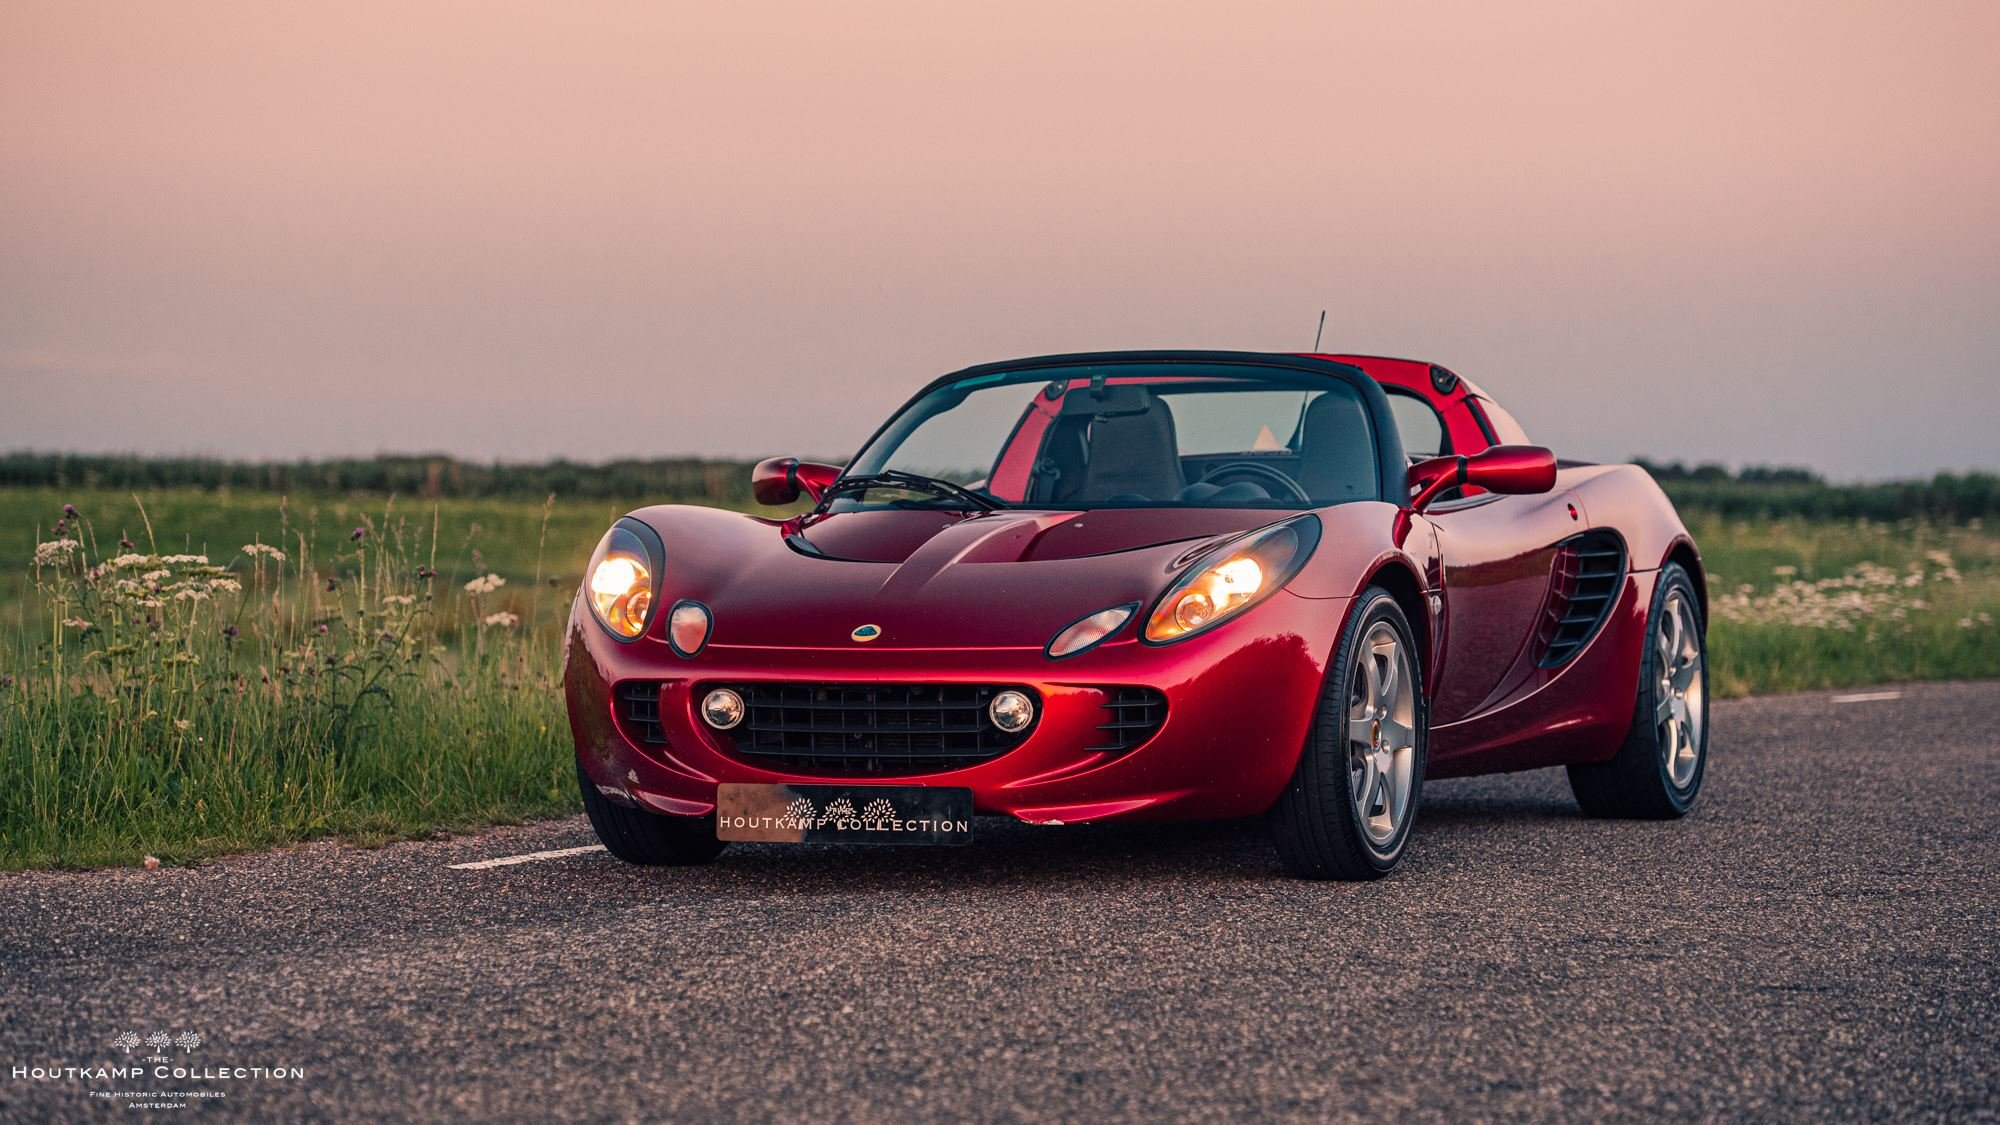 2002 LOTUS ELISE, Series II, 34000KMS SINCE NEW For Sale (picture 1 of 6)